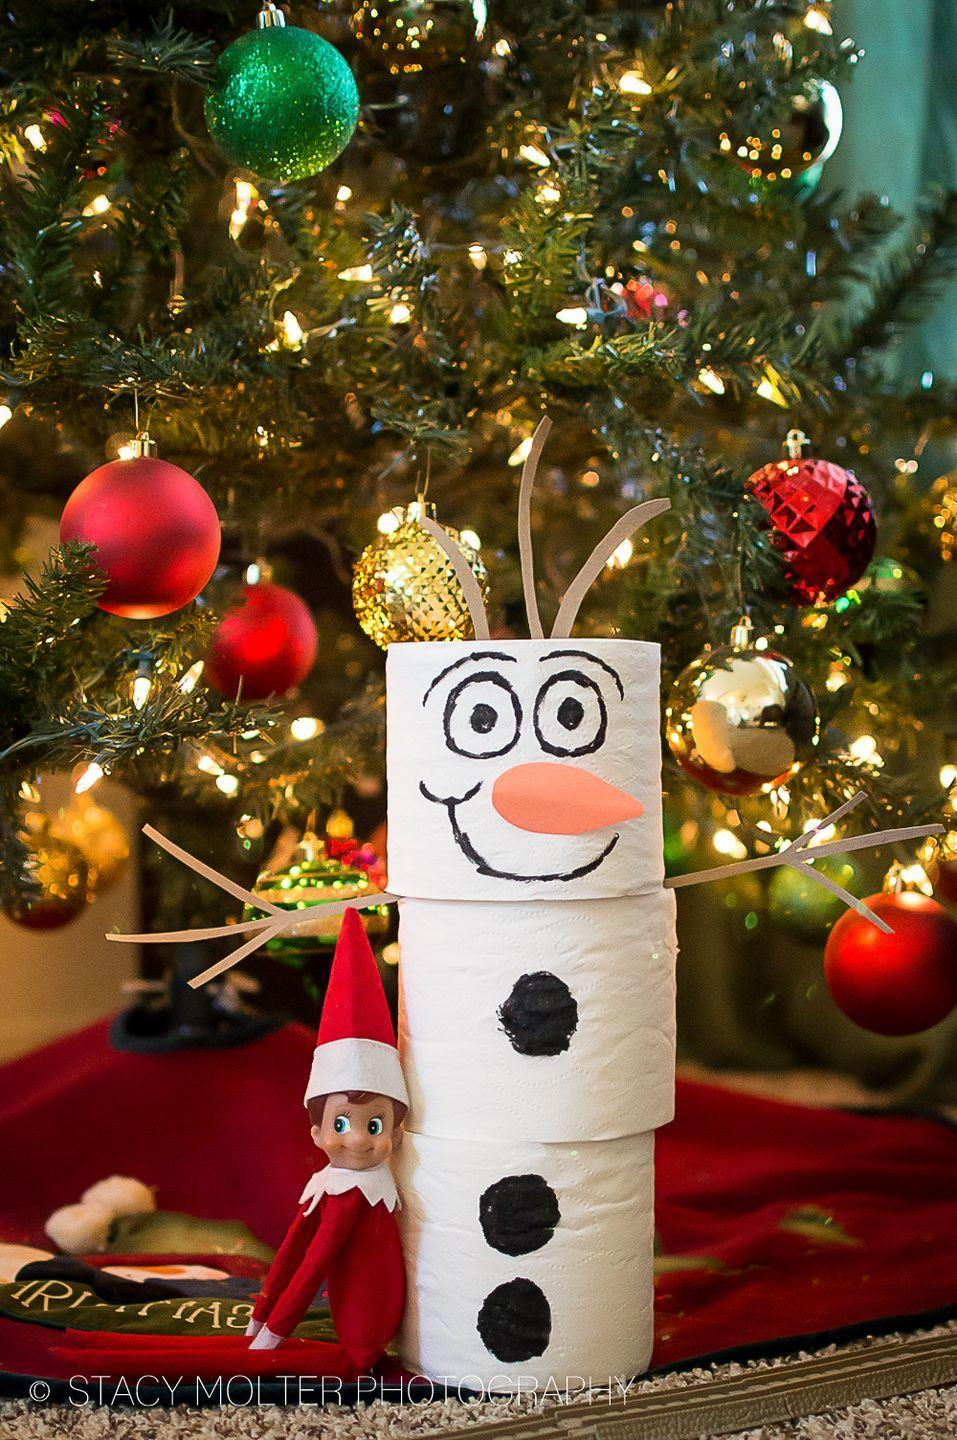 """<p>Toilet paper was <em>the </em>trend of 2020.Here, paired with some orange construction paper, it becomes a snowman friend for your Elf—and if your kids are fans of <em>Frozen</em>, that friend can have a name: Olaf!</p><p><strong>Get the tutorial at <a href=""""https://californiaunpublished.com/45-amazingly-easy-elf-on-the-shelf-ideas-for-busy-moms/"""" rel=""""nofollow noopener"""" target=""""_blank"""" data-ylk=""""slk:California Unpublished"""" class=""""link rapid-noclick-resp"""">California Unpublished</a>.</strong></p><p><strong><a class=""""link rapid-noclick-resp"""" href=""""https://go.redirectingat.com?id=74968X1596630&url=https%3A%2F%2Fwww.walmart.com%2Fsearch%2F%3Fquery%3Delf%2Bon%2Bthe%2Bshelf&sref=https%3A%2F%2Fwww.thepioneerwoman.com%2Fholidays-celebrations%2Fg34080491%2Ffunny-elf-on-the-shelf-ideas%2F"""" rel=""""nofollow noopener"""" target=""""_blank"""" data-ylk=""""slk:SHOP ELF ON THE SHELF"""">SHOP ELF ON THE SHELF</a></strong></p>"""